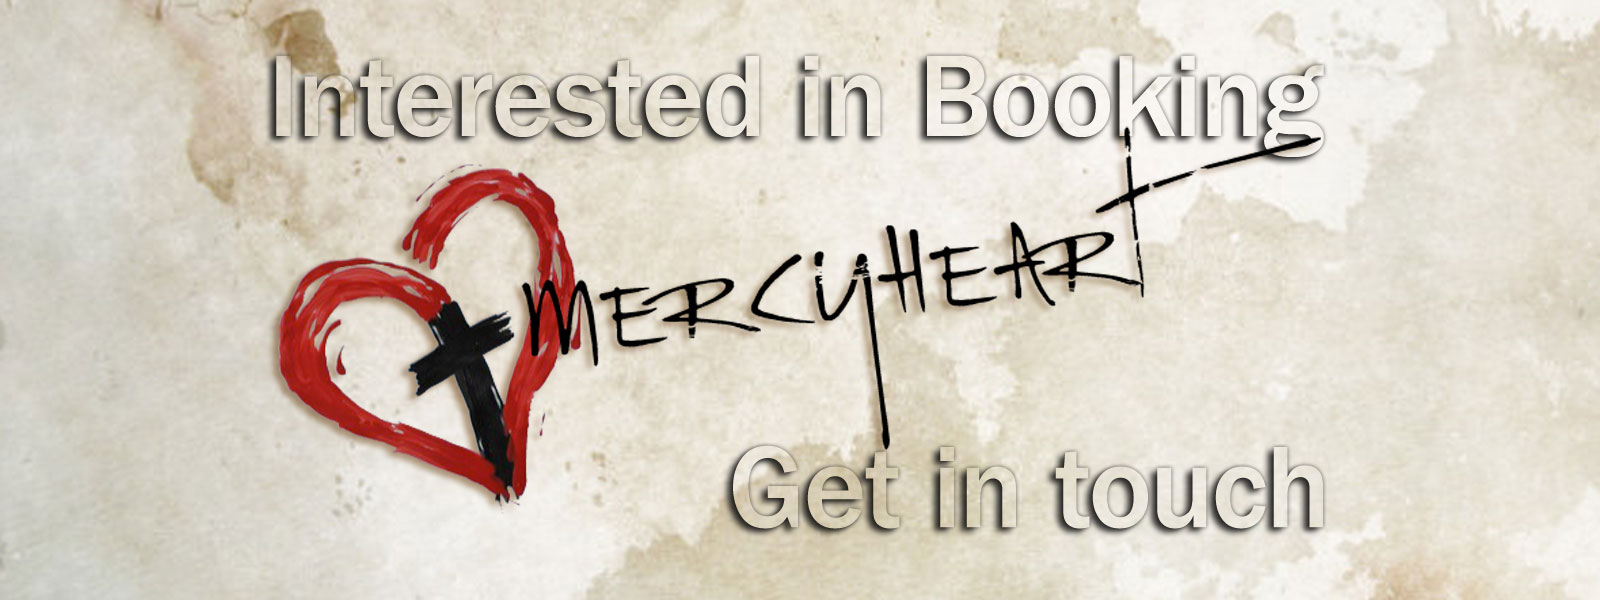 Interested in Booking MercyHeart?